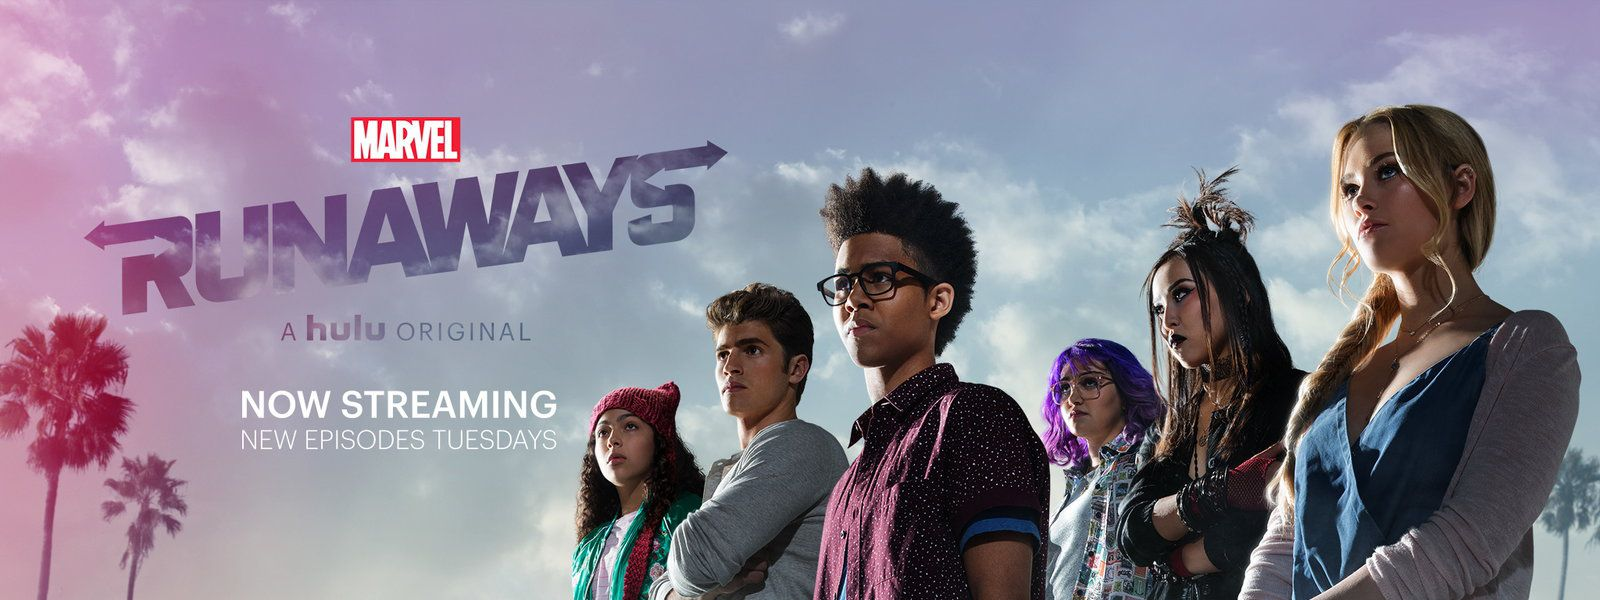 Marvel's Runaways - characters